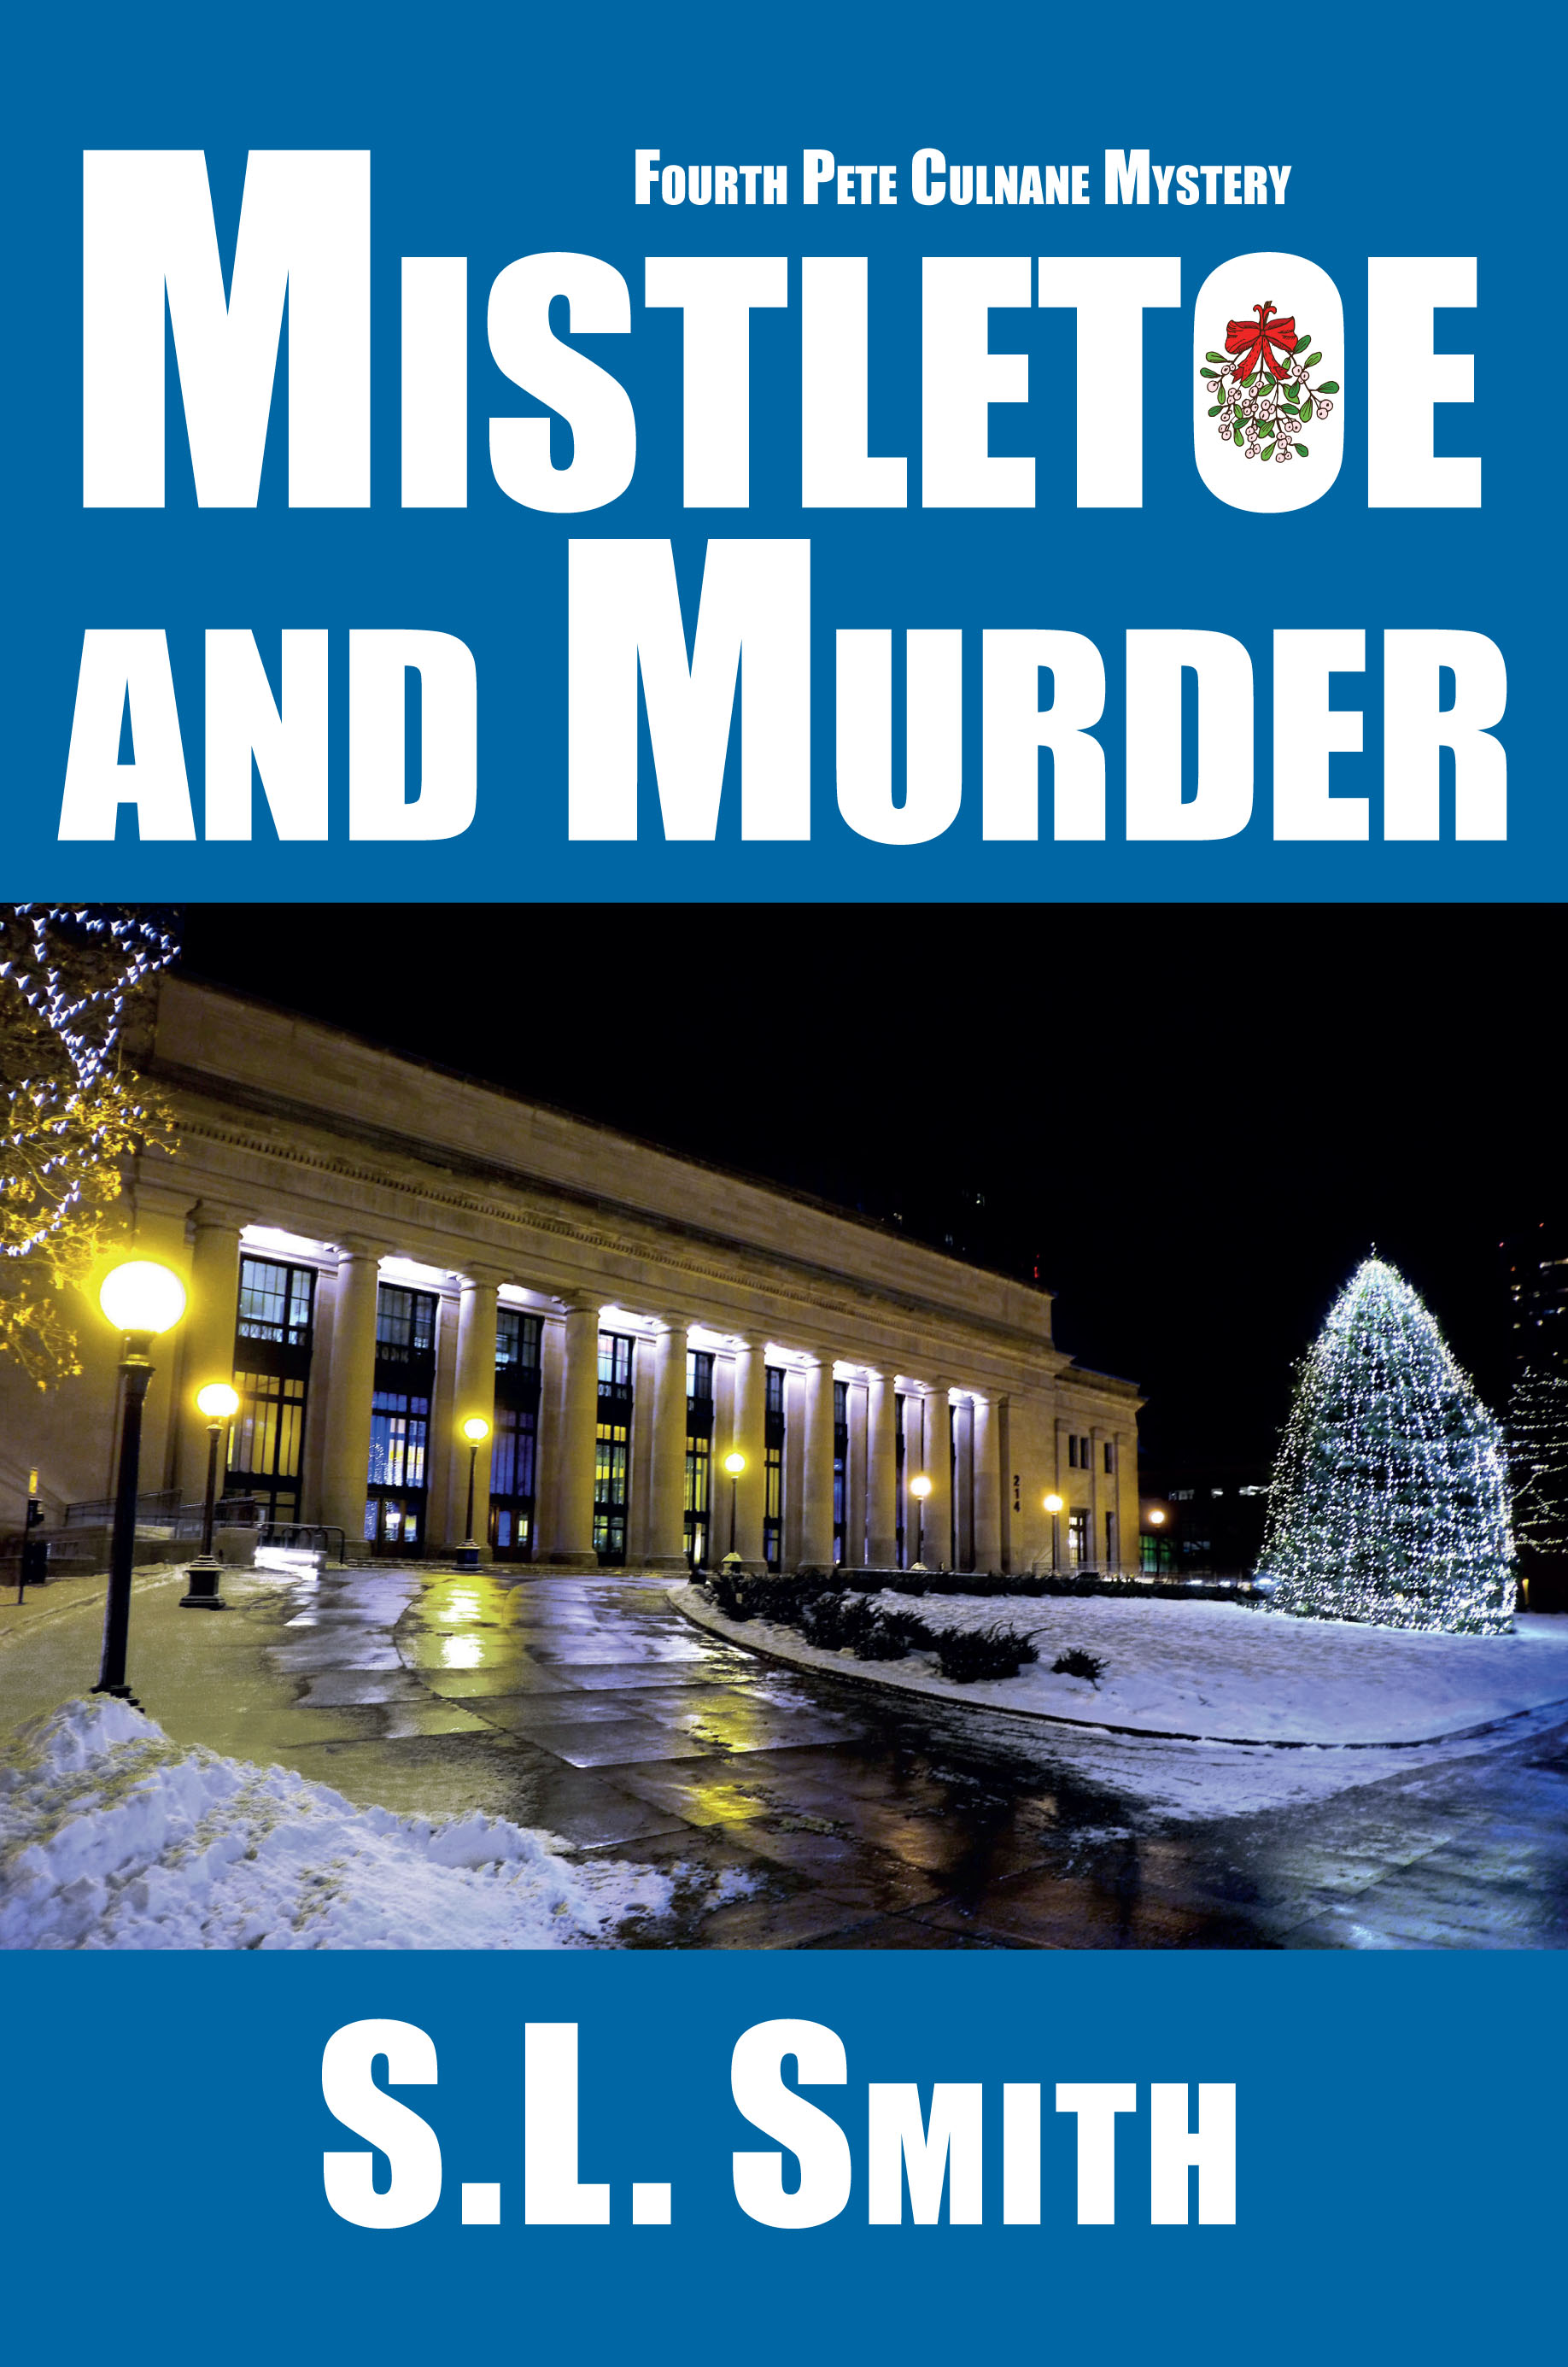 Mistletoe and Murder -cover_Layout